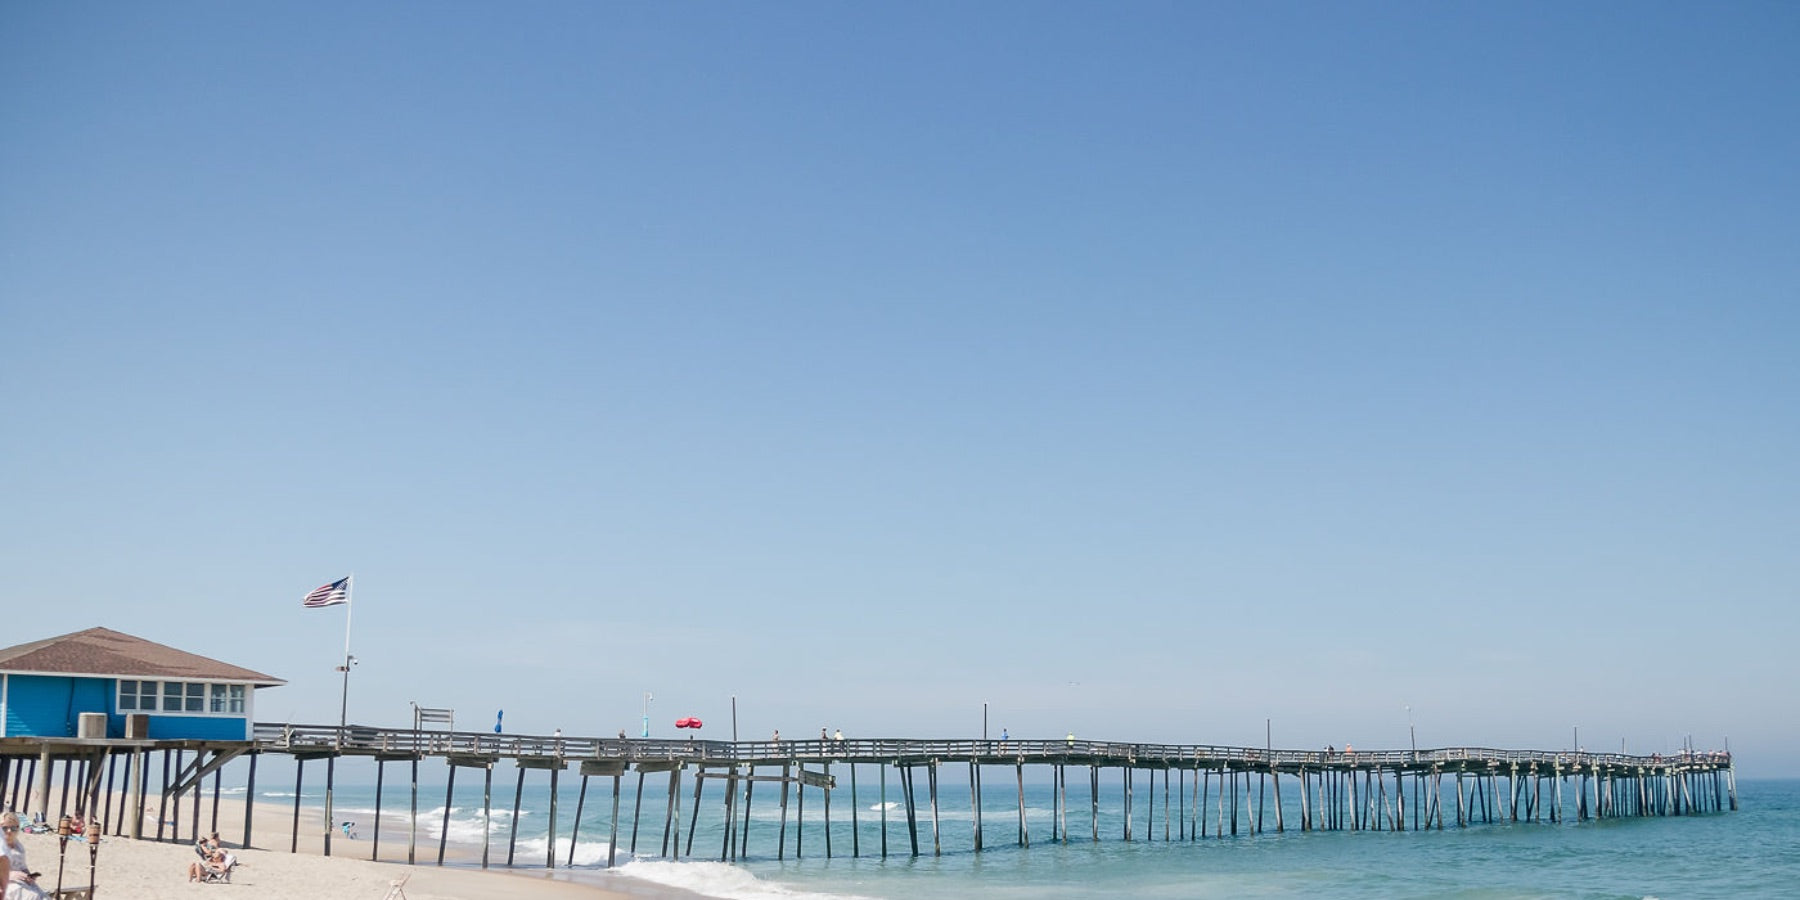 A wide angle view of the Avon Pier on a blue sky sunny day. The Avon Pier is stretching out into the crystal blue Atlantic Ocean.